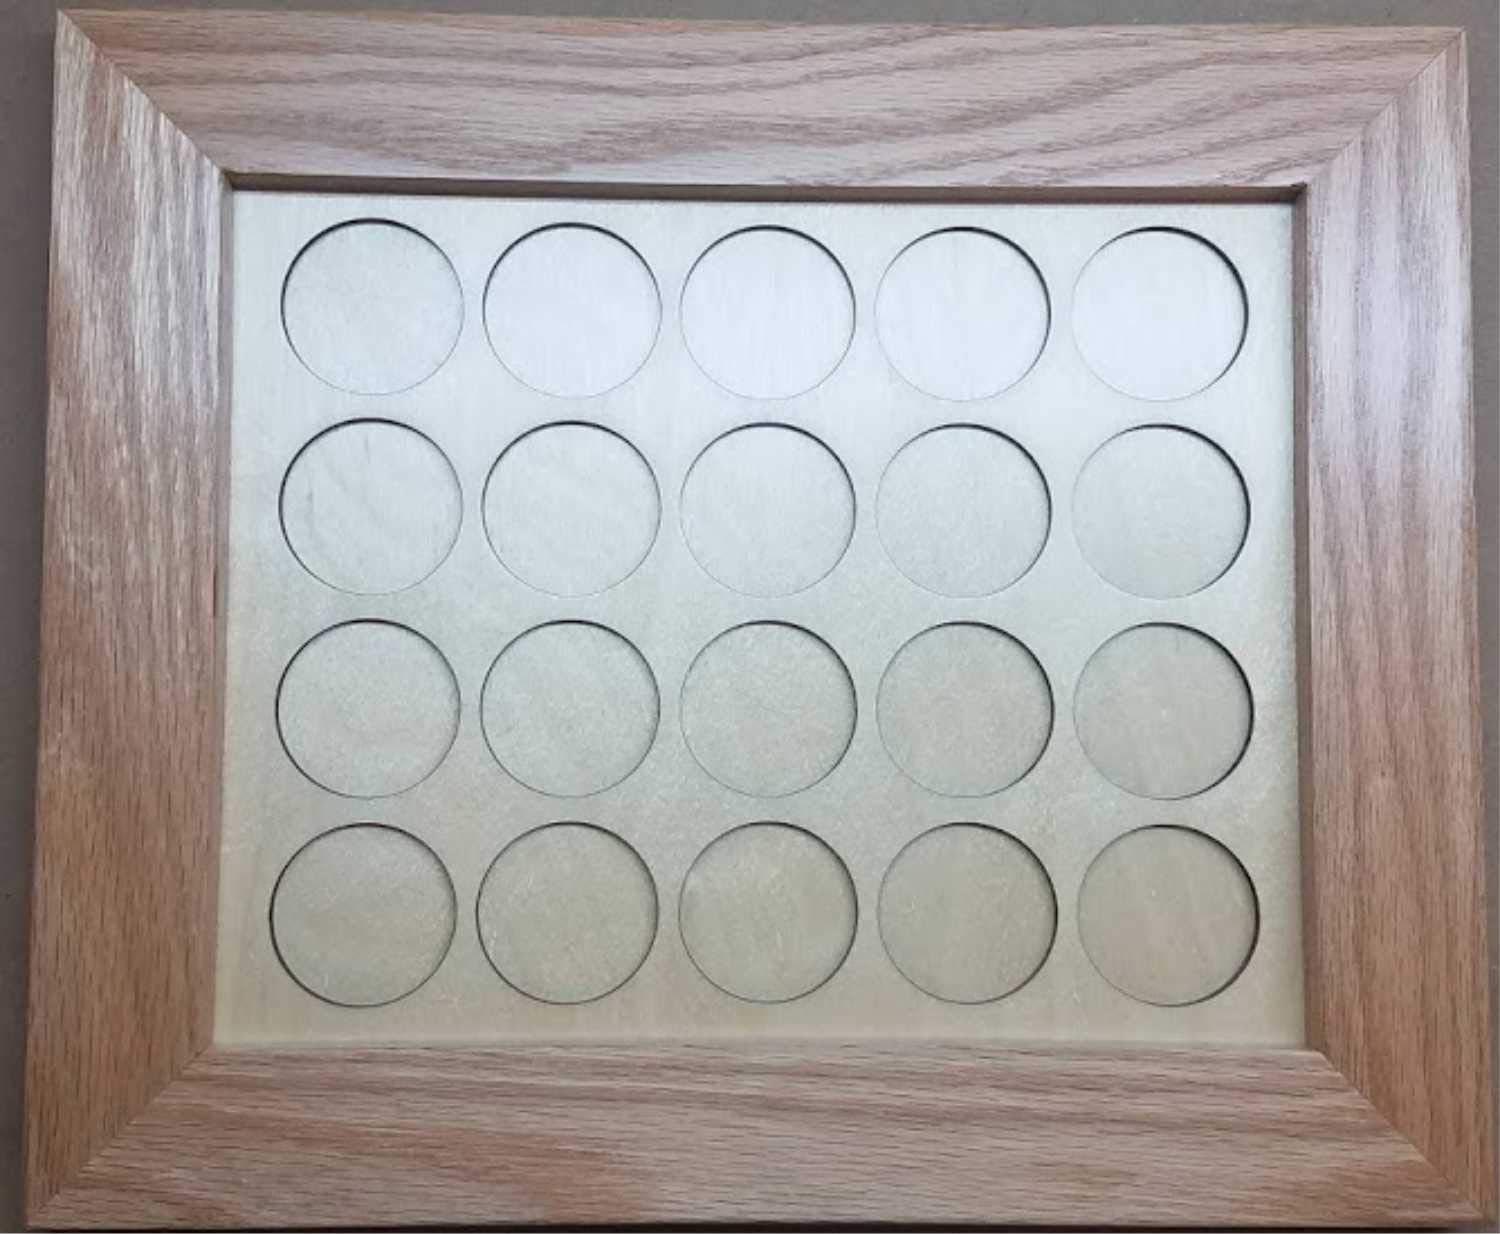 Natural Wood 8x10 All Chips Motorcycle Poker Chip Display Case with Oak Frame and Birch Mat